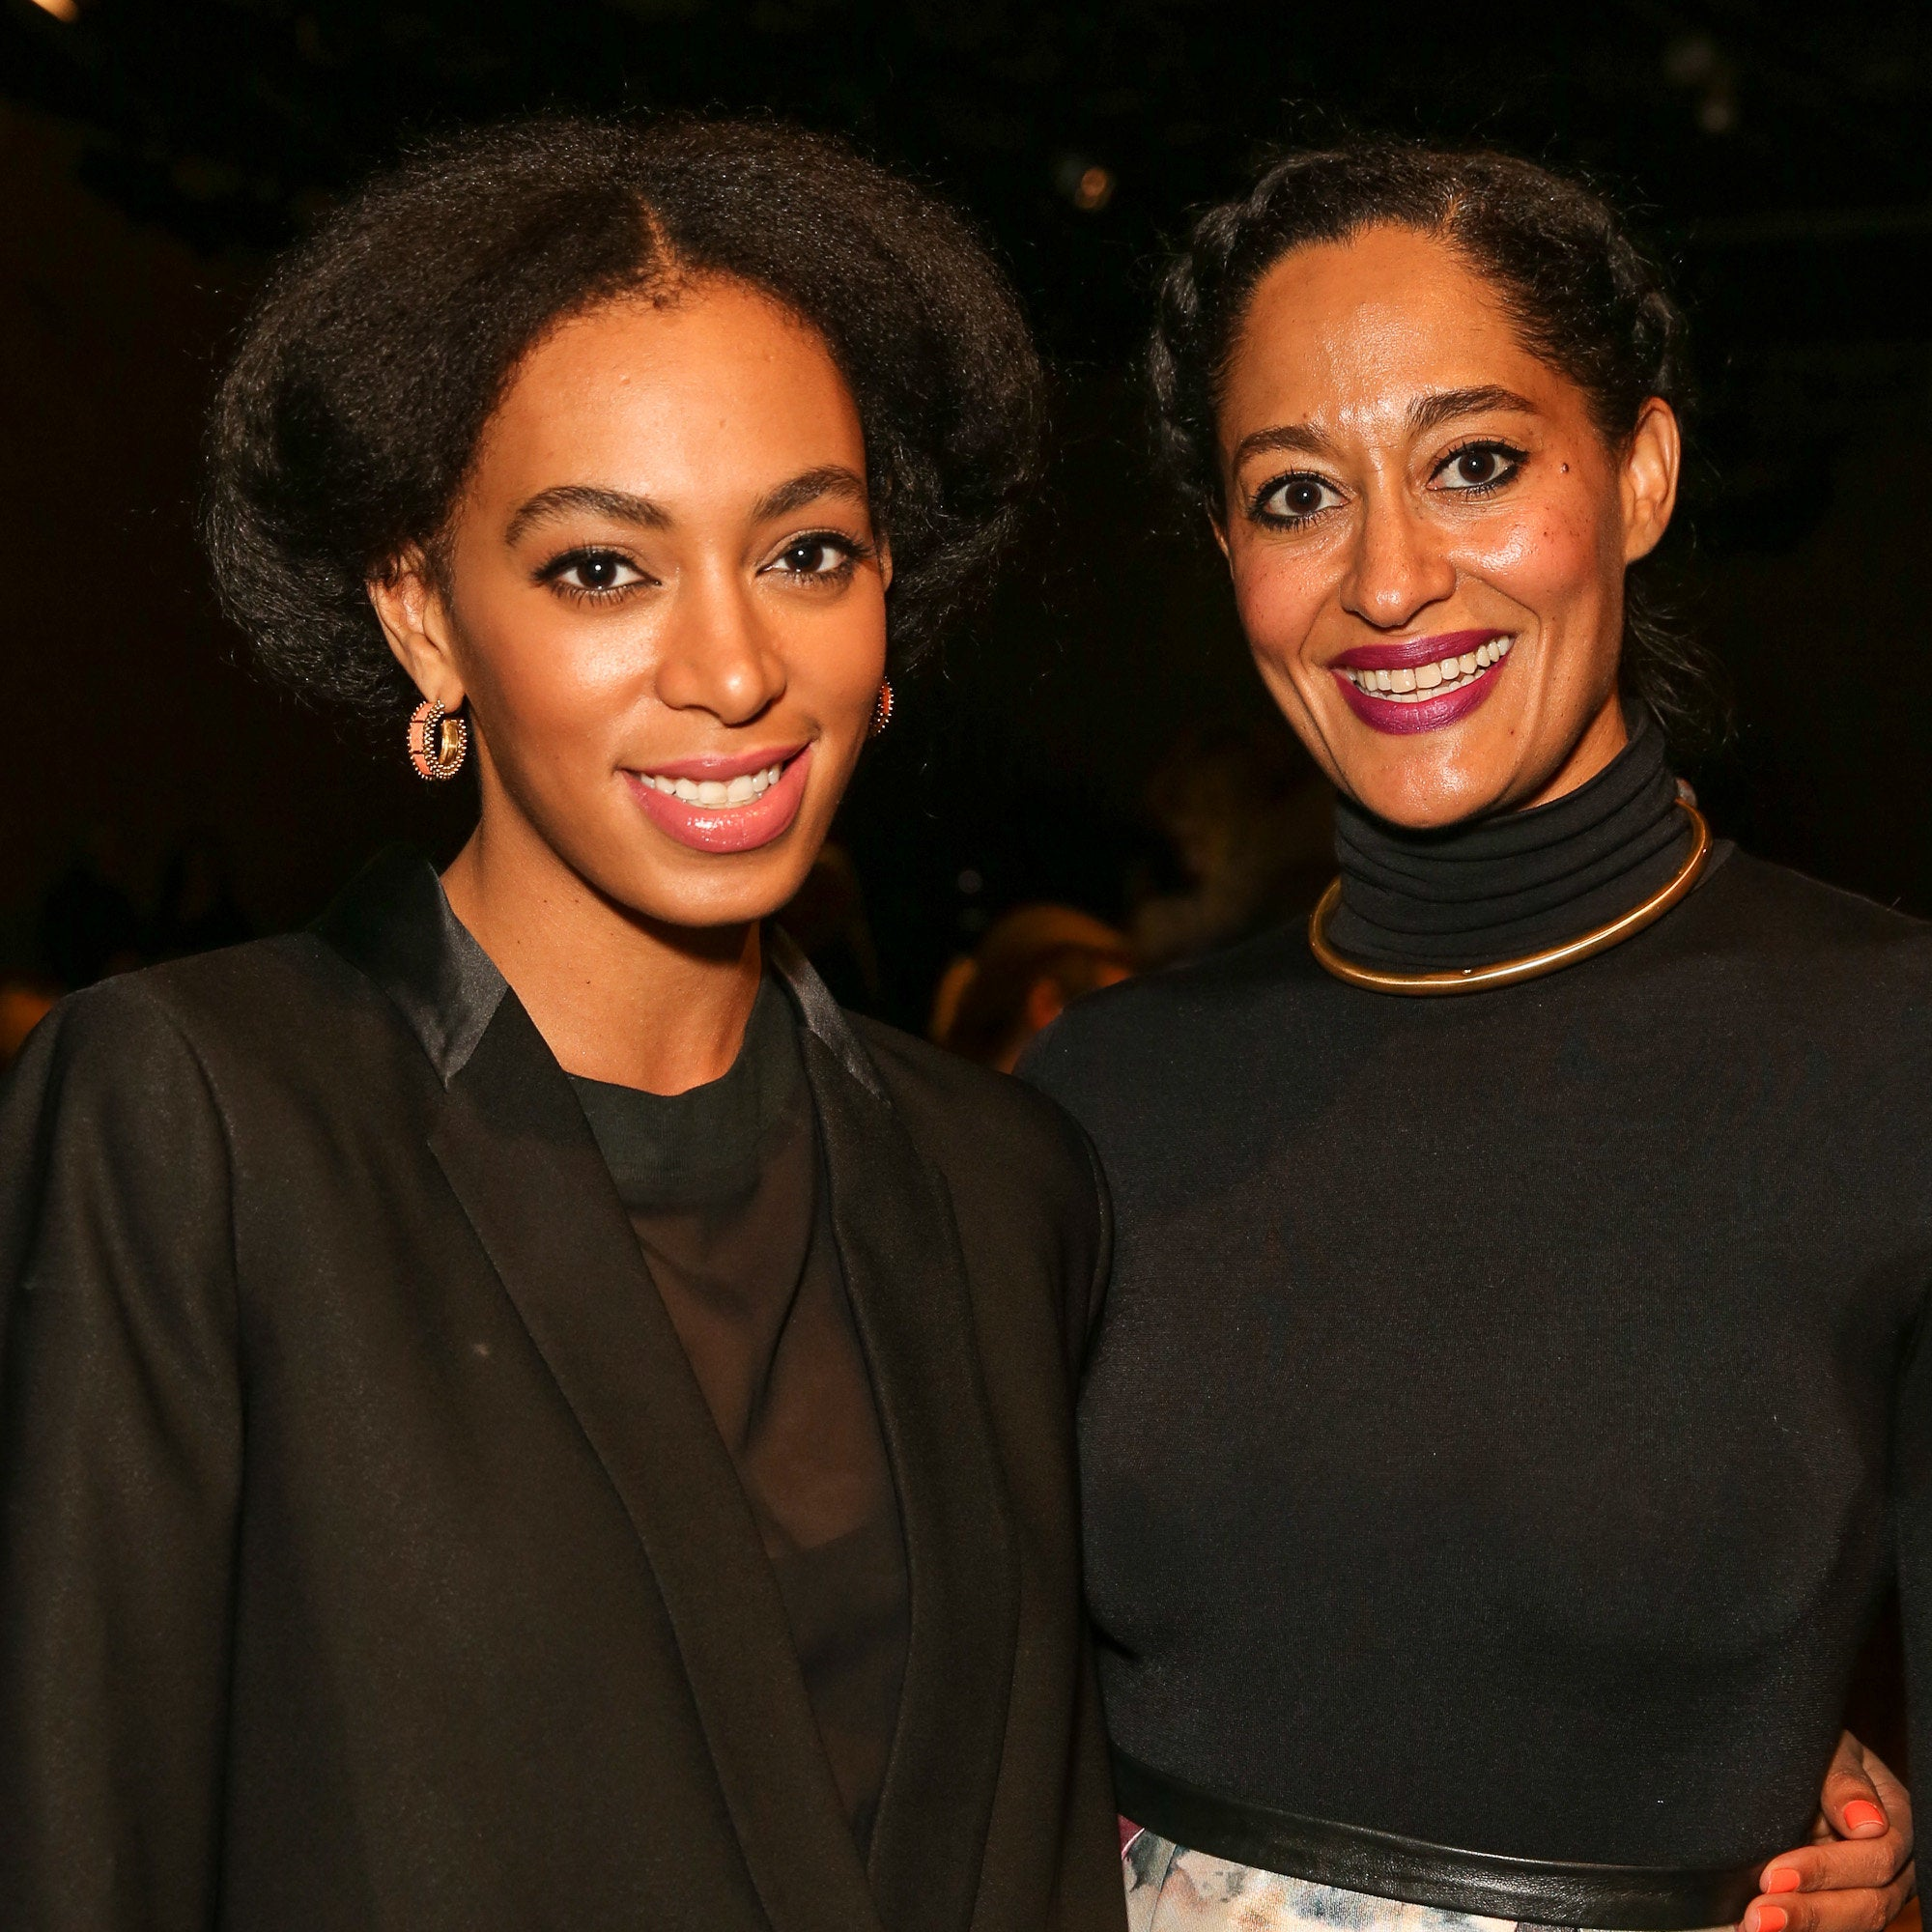 Tracee Ellis Ross Recreates Solange Knowles' 'A Seat At The Table' Album Cover And Nails It